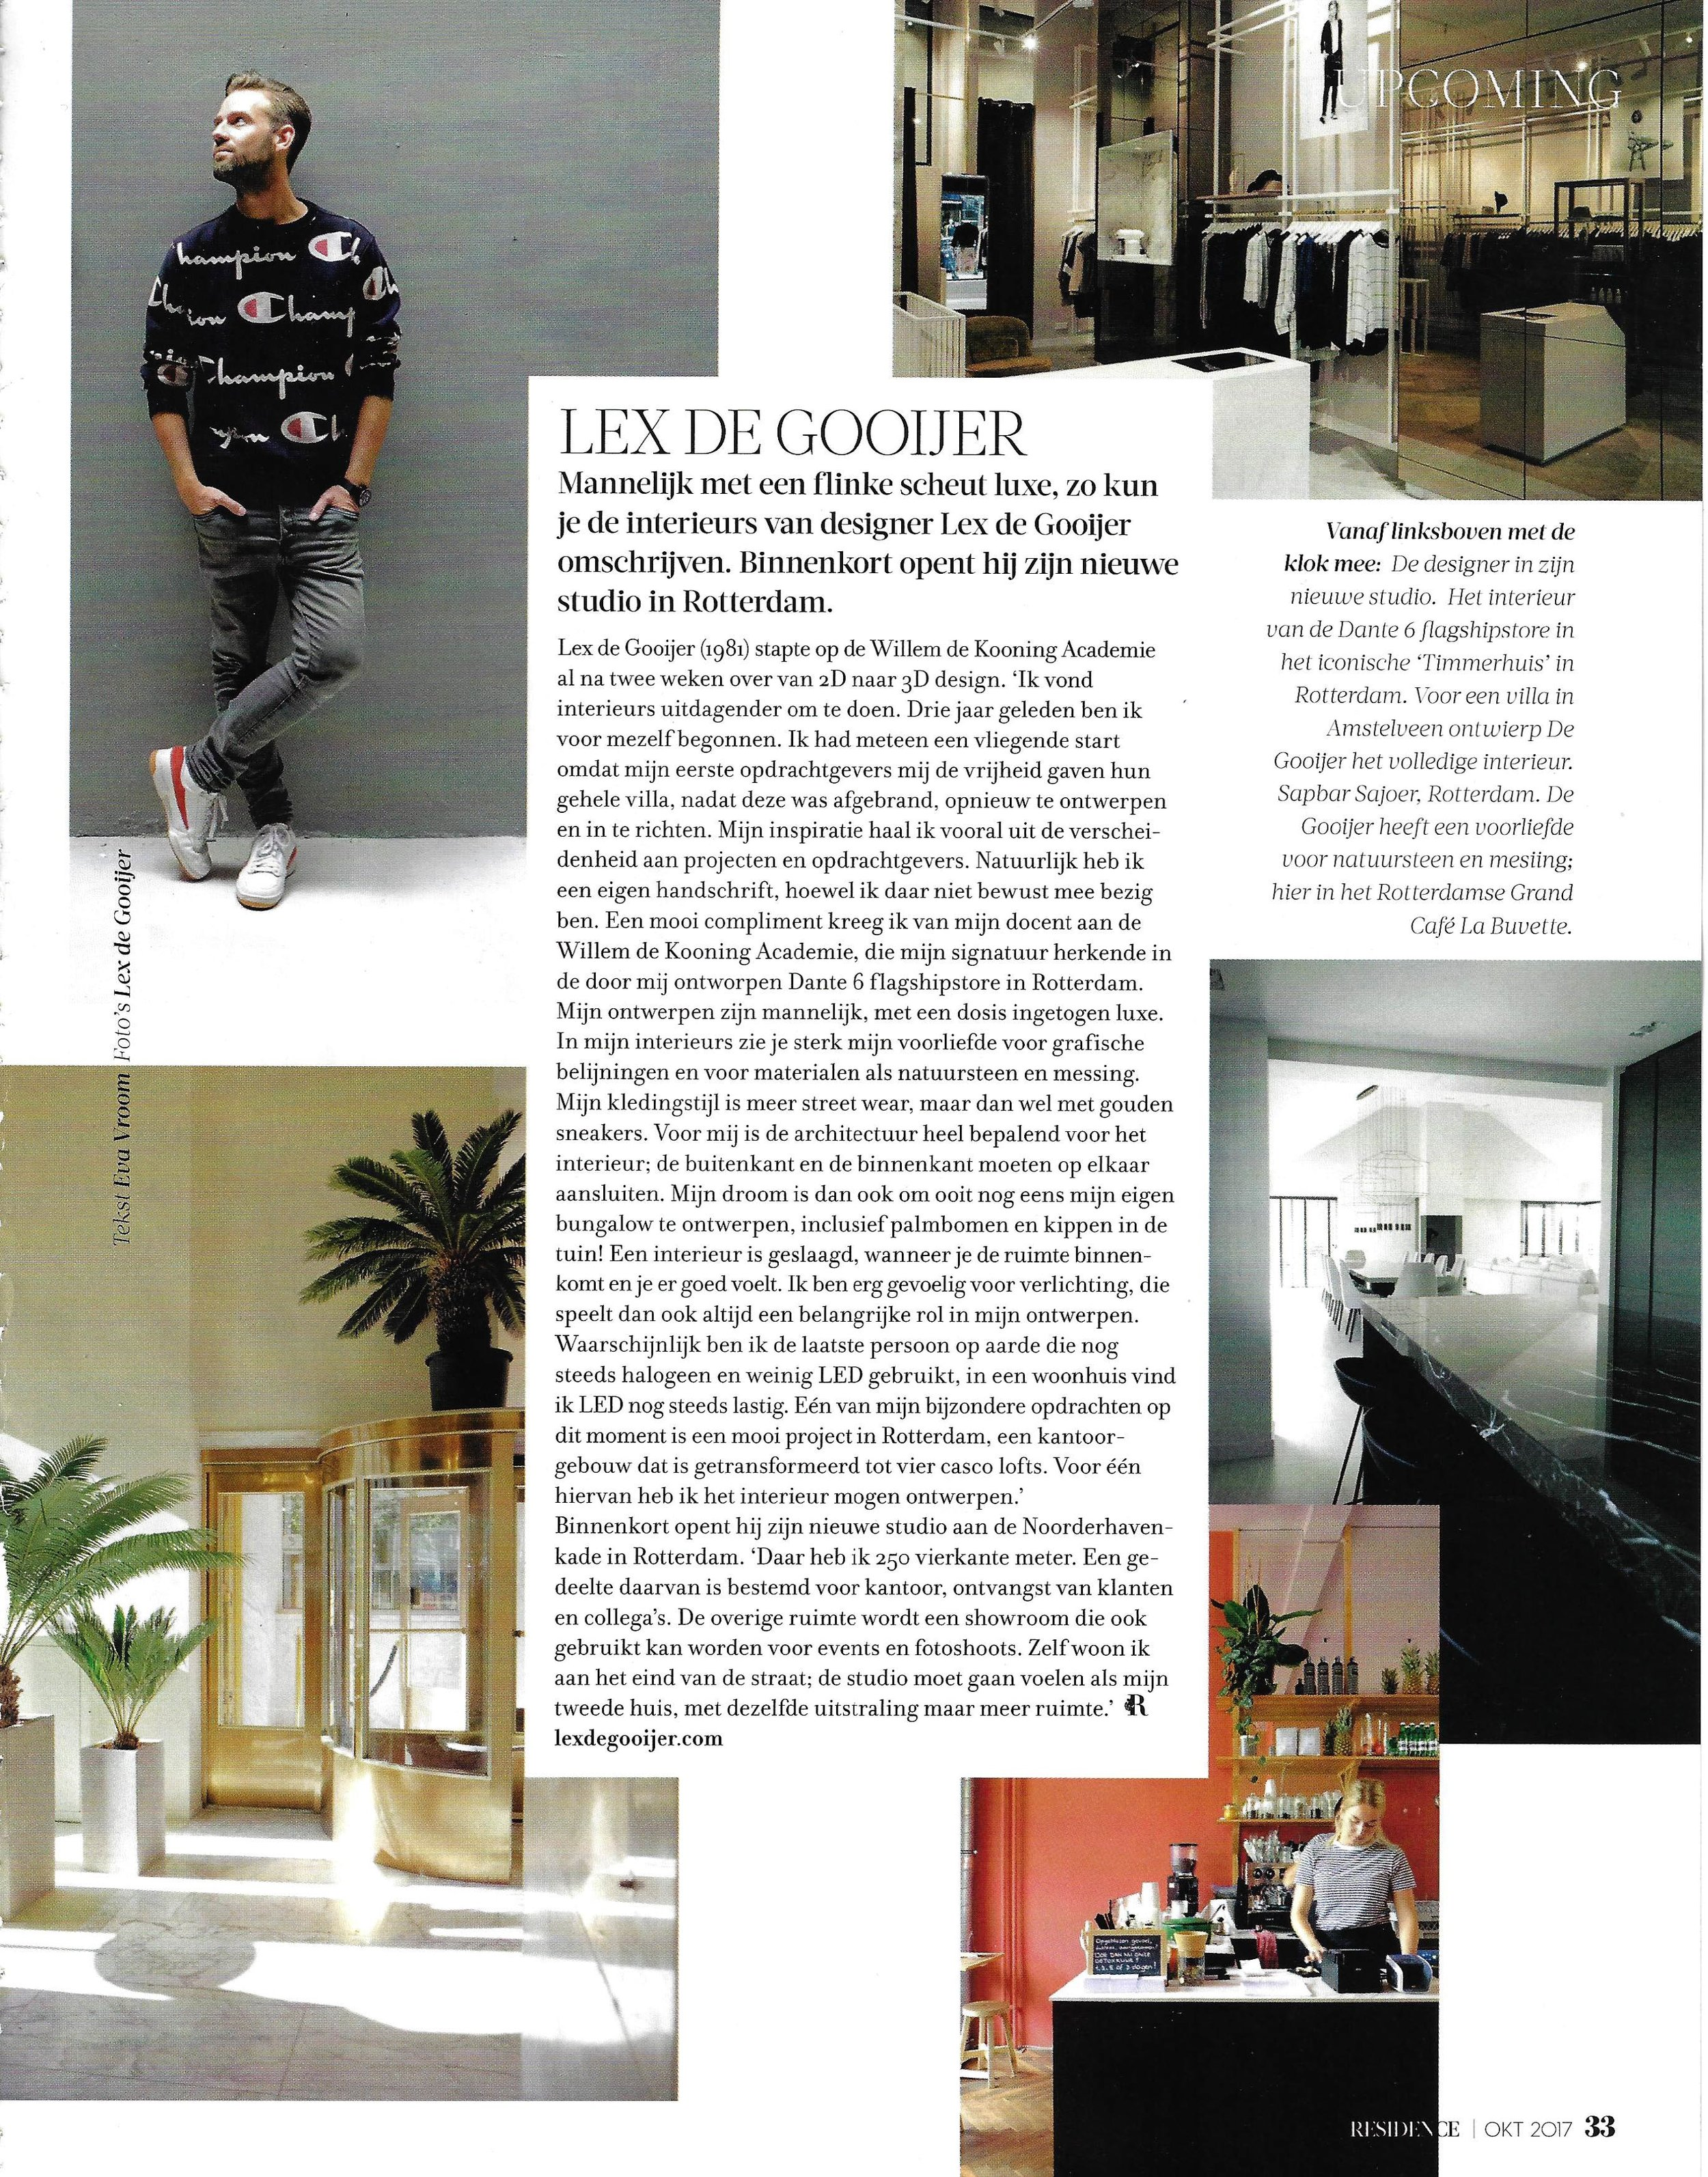 002 Lex de Gooijer interior architect Residence magazine oktober 2017 upcoming.jpg